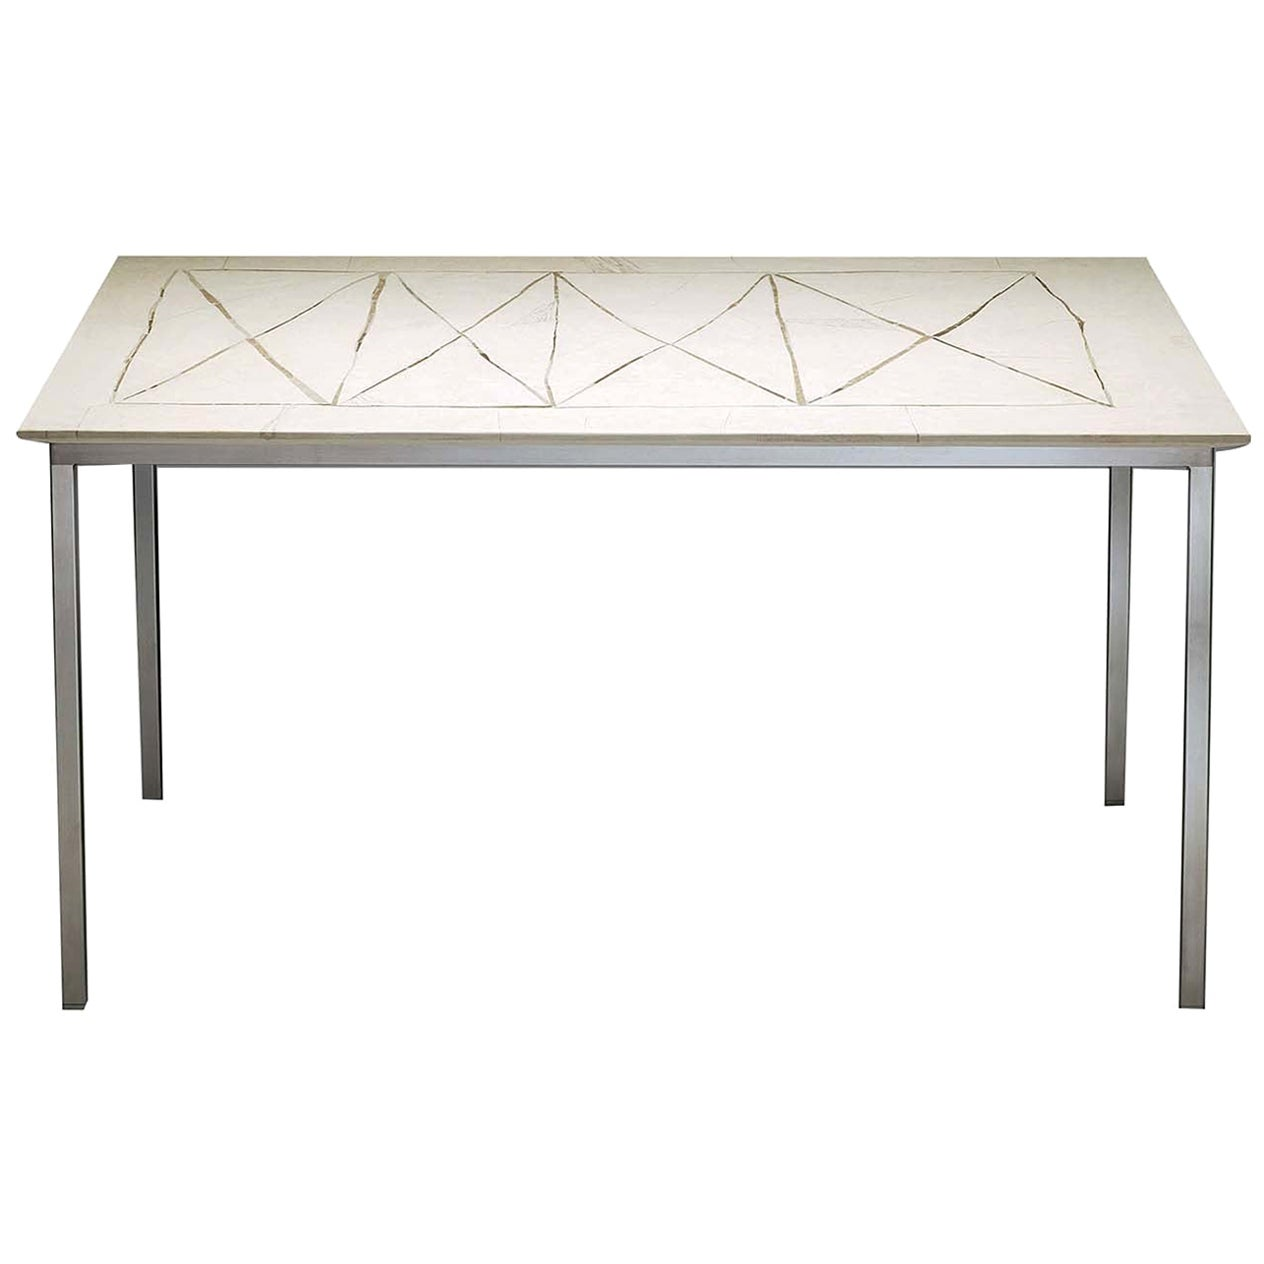 Table with Diamond-Shaped Motif